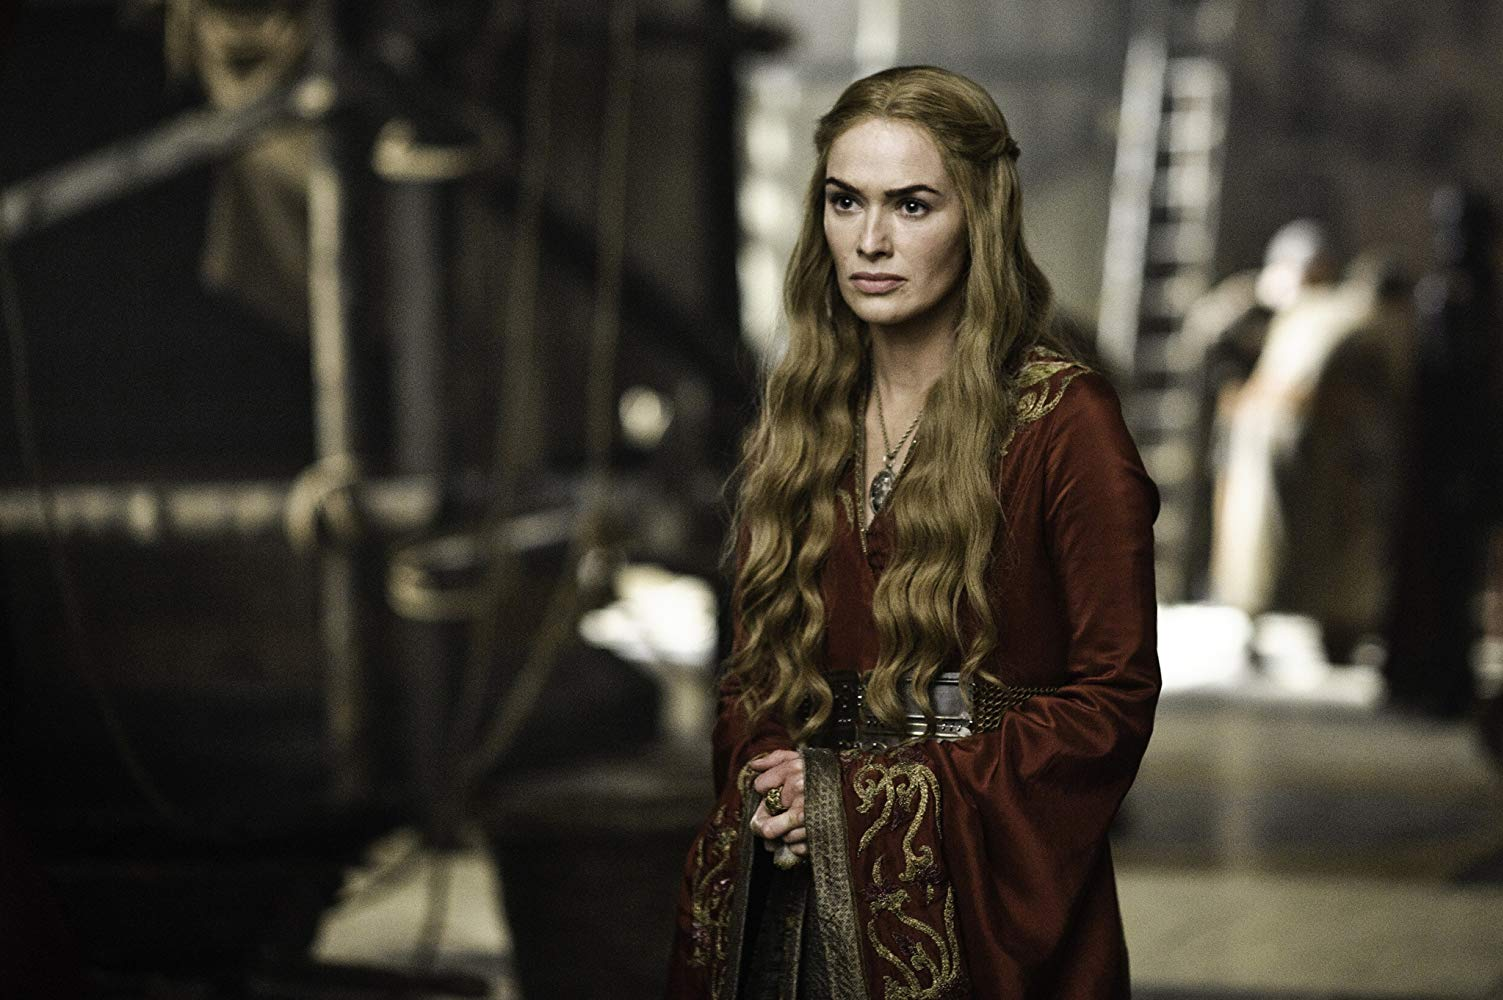 Cersei Lannister (Lena Headey) in 'Game of Thrones'. (Source: IMDB)